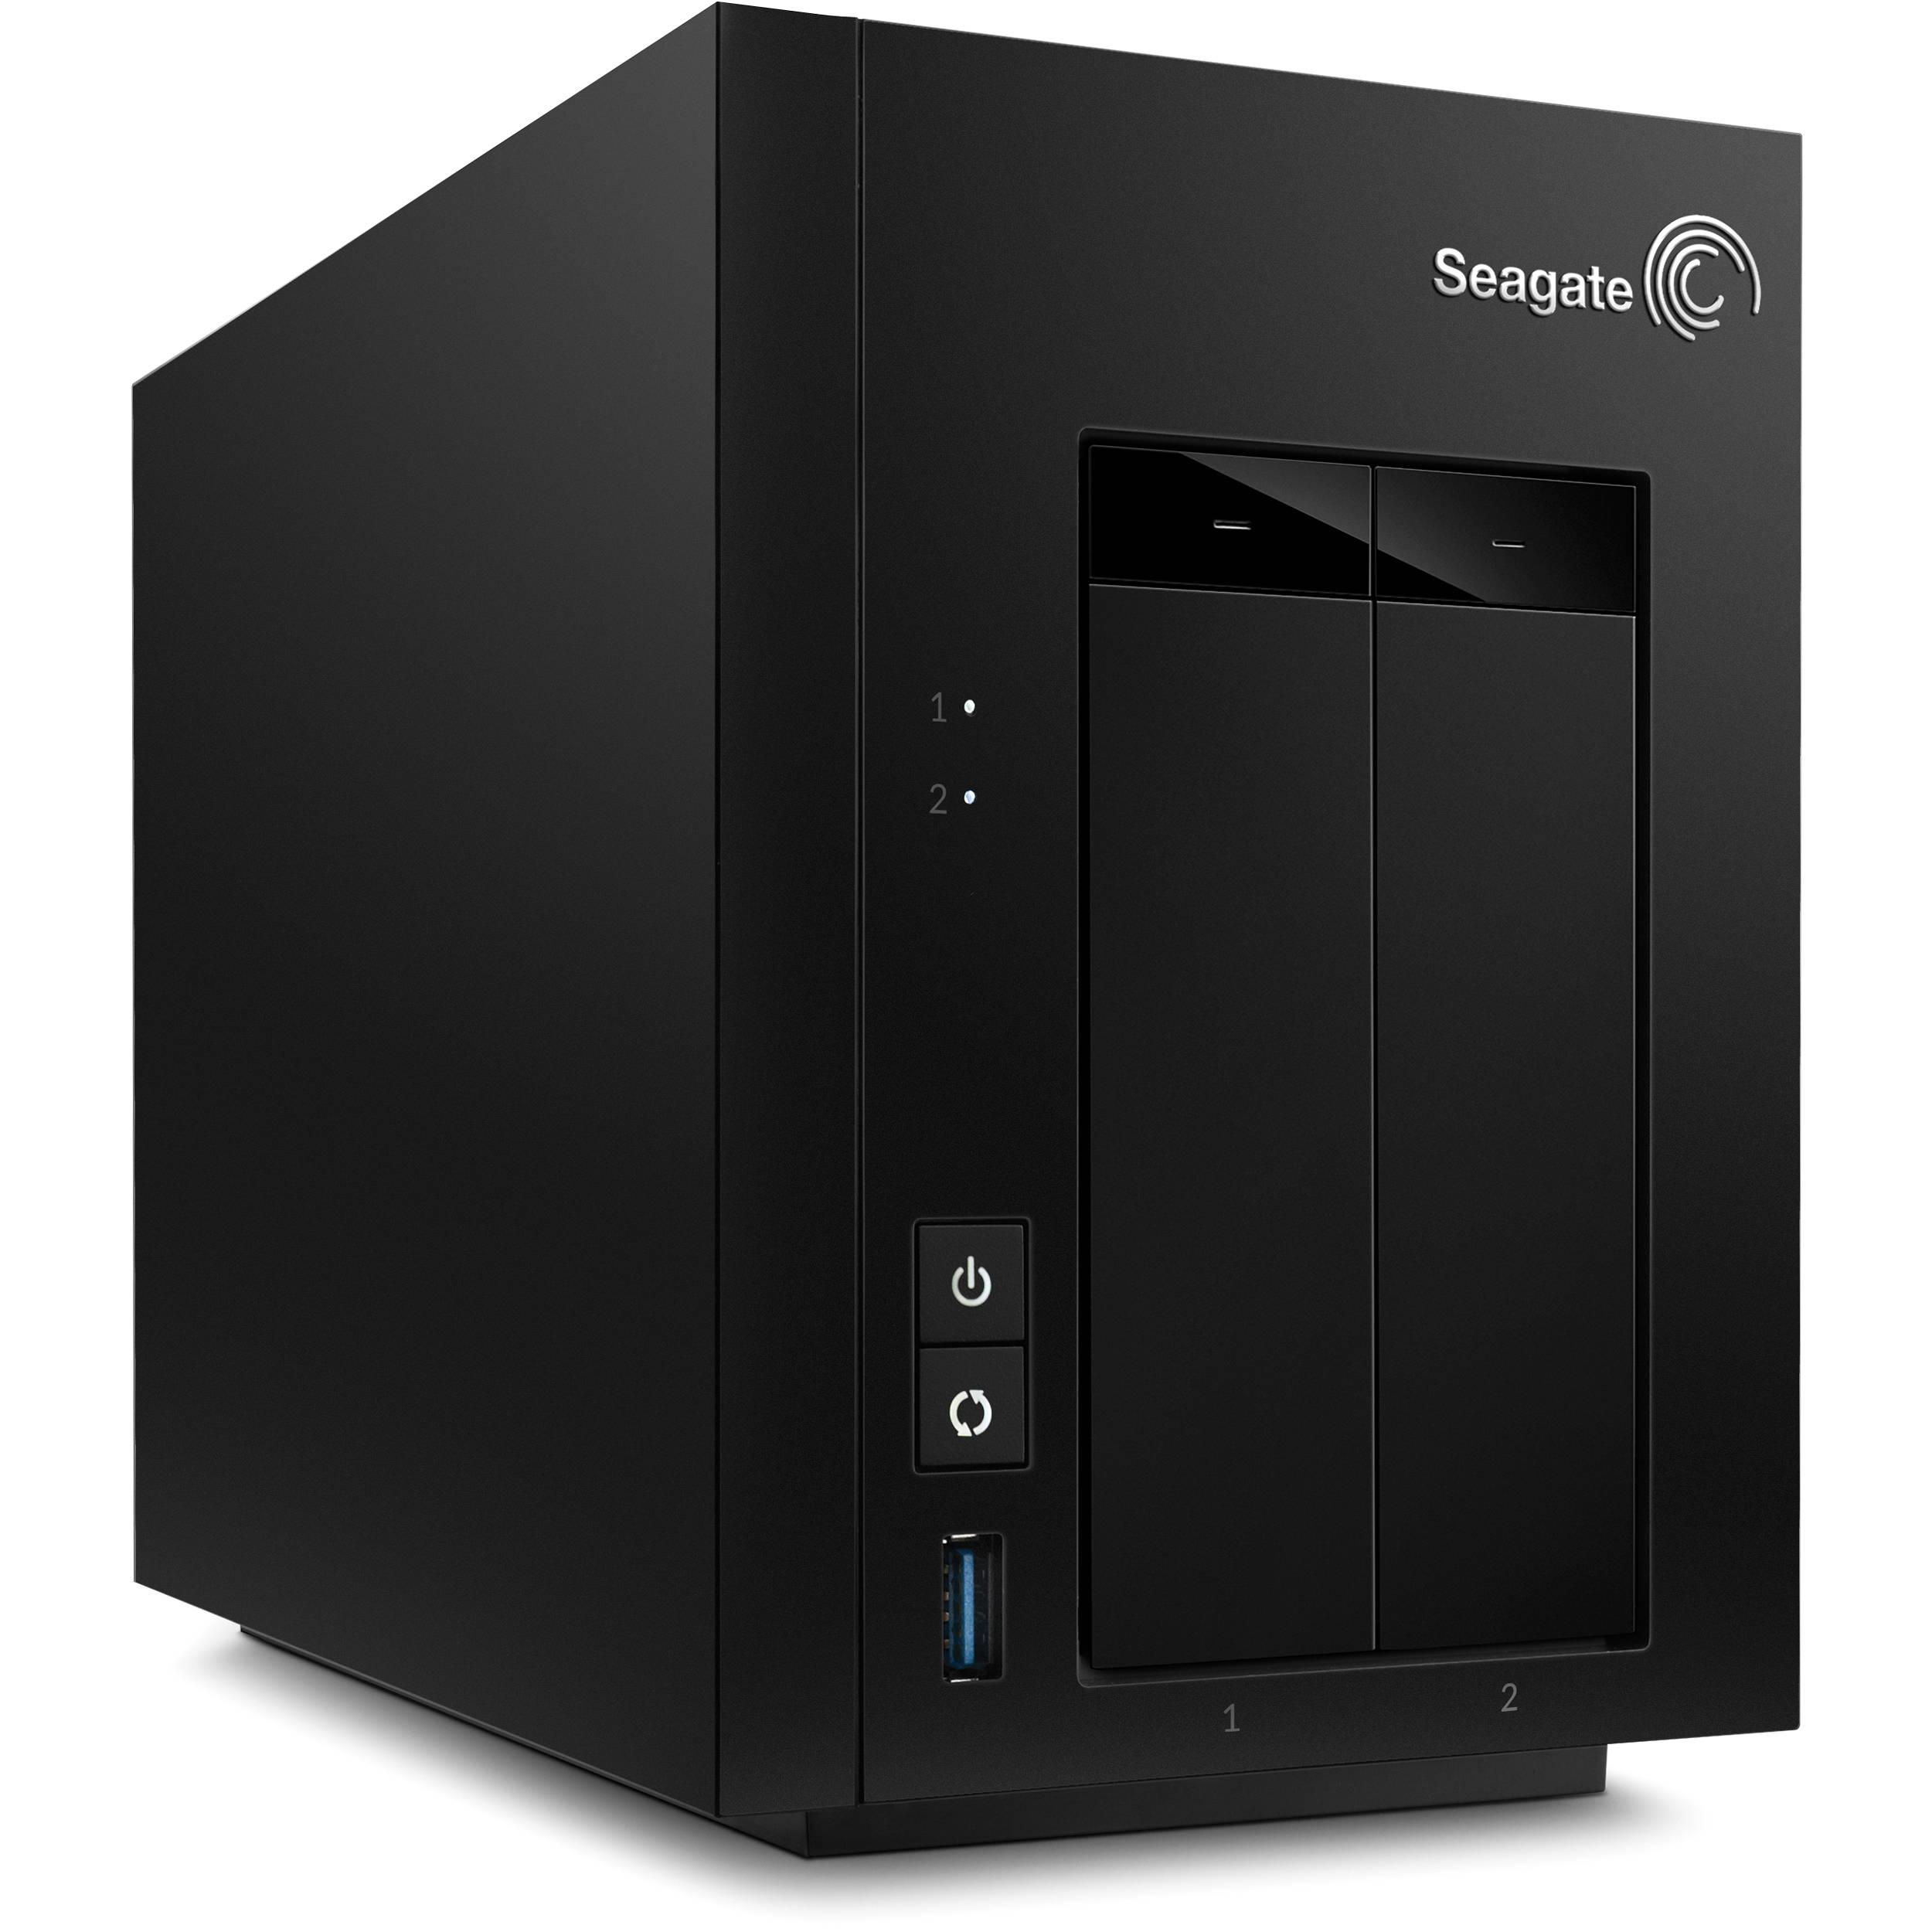 Seagate 2tb 1 x 2tb stct2000100 2 bay nas server stct2000100 for Storage bay